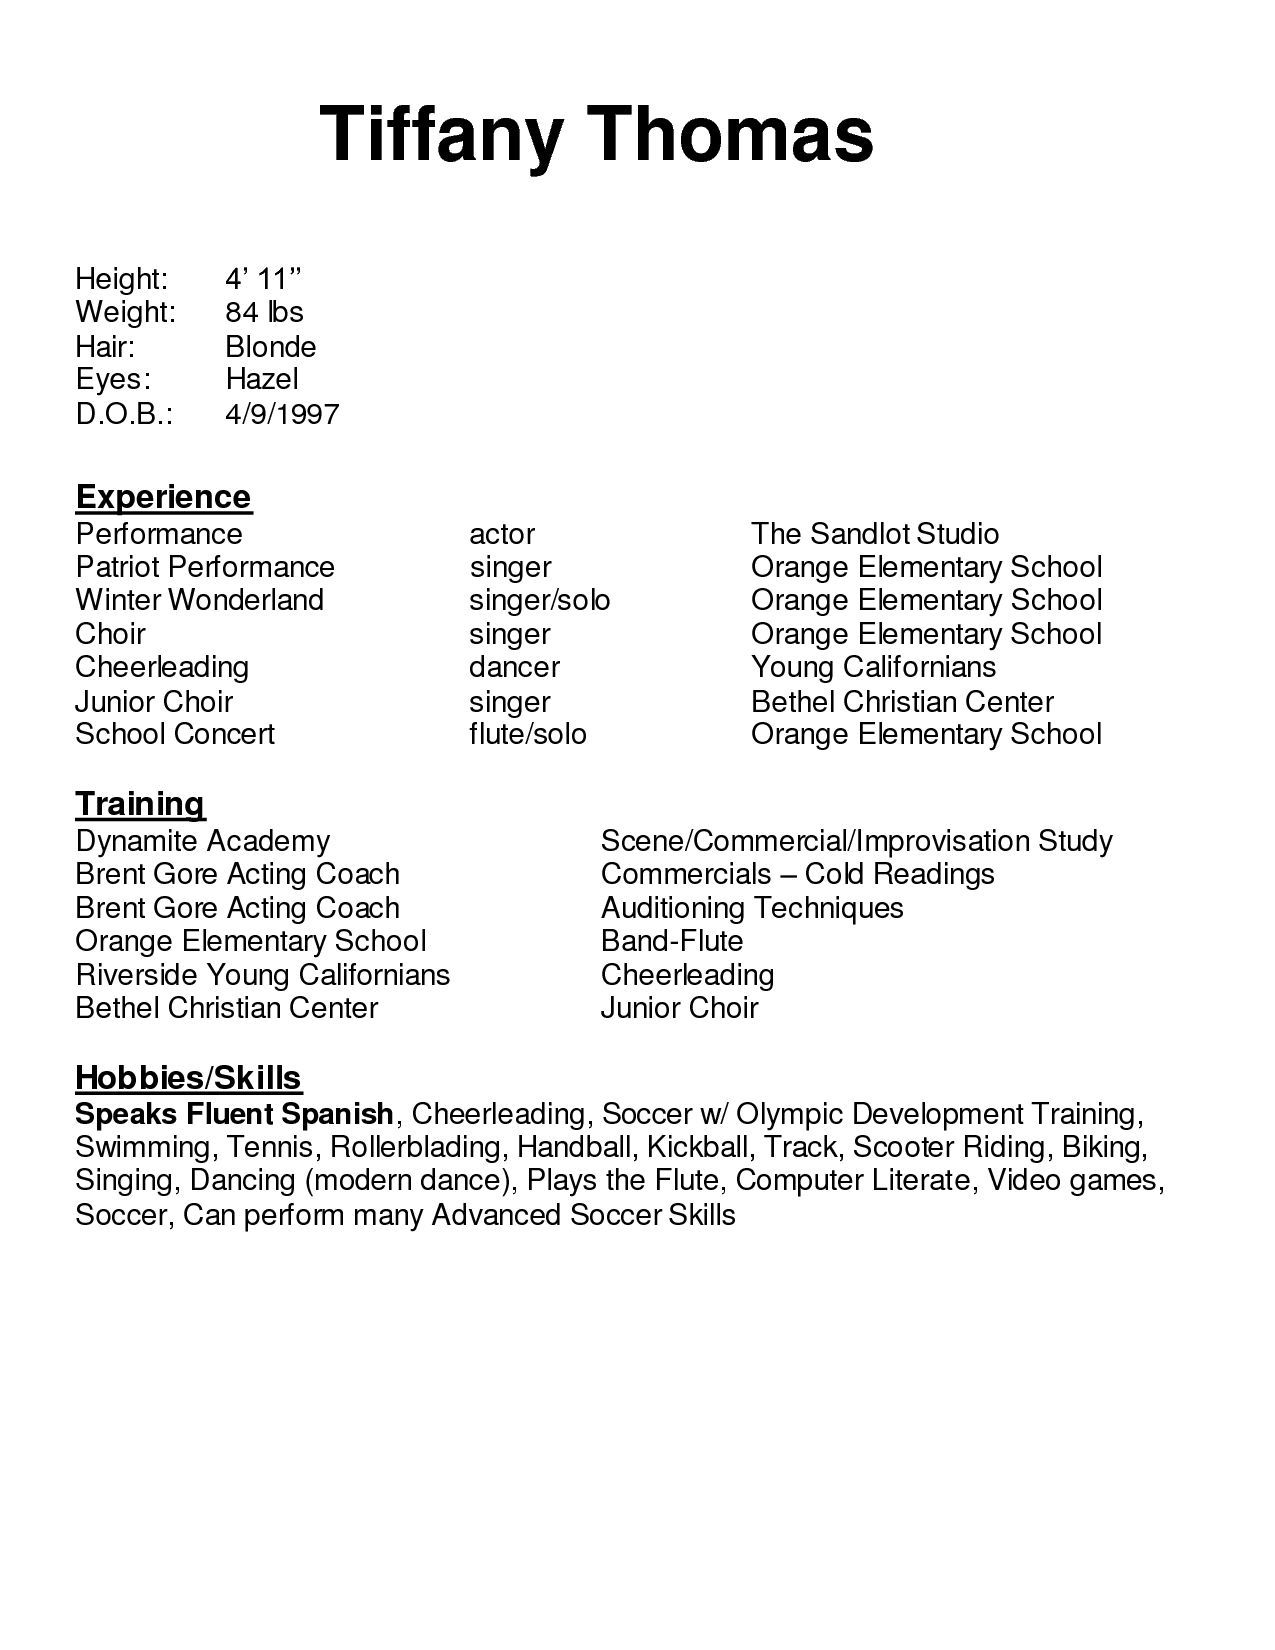 Free Resume Templates For Youth Resume Examples Acting Resume Cover Letter For Resume Acting Resume Template